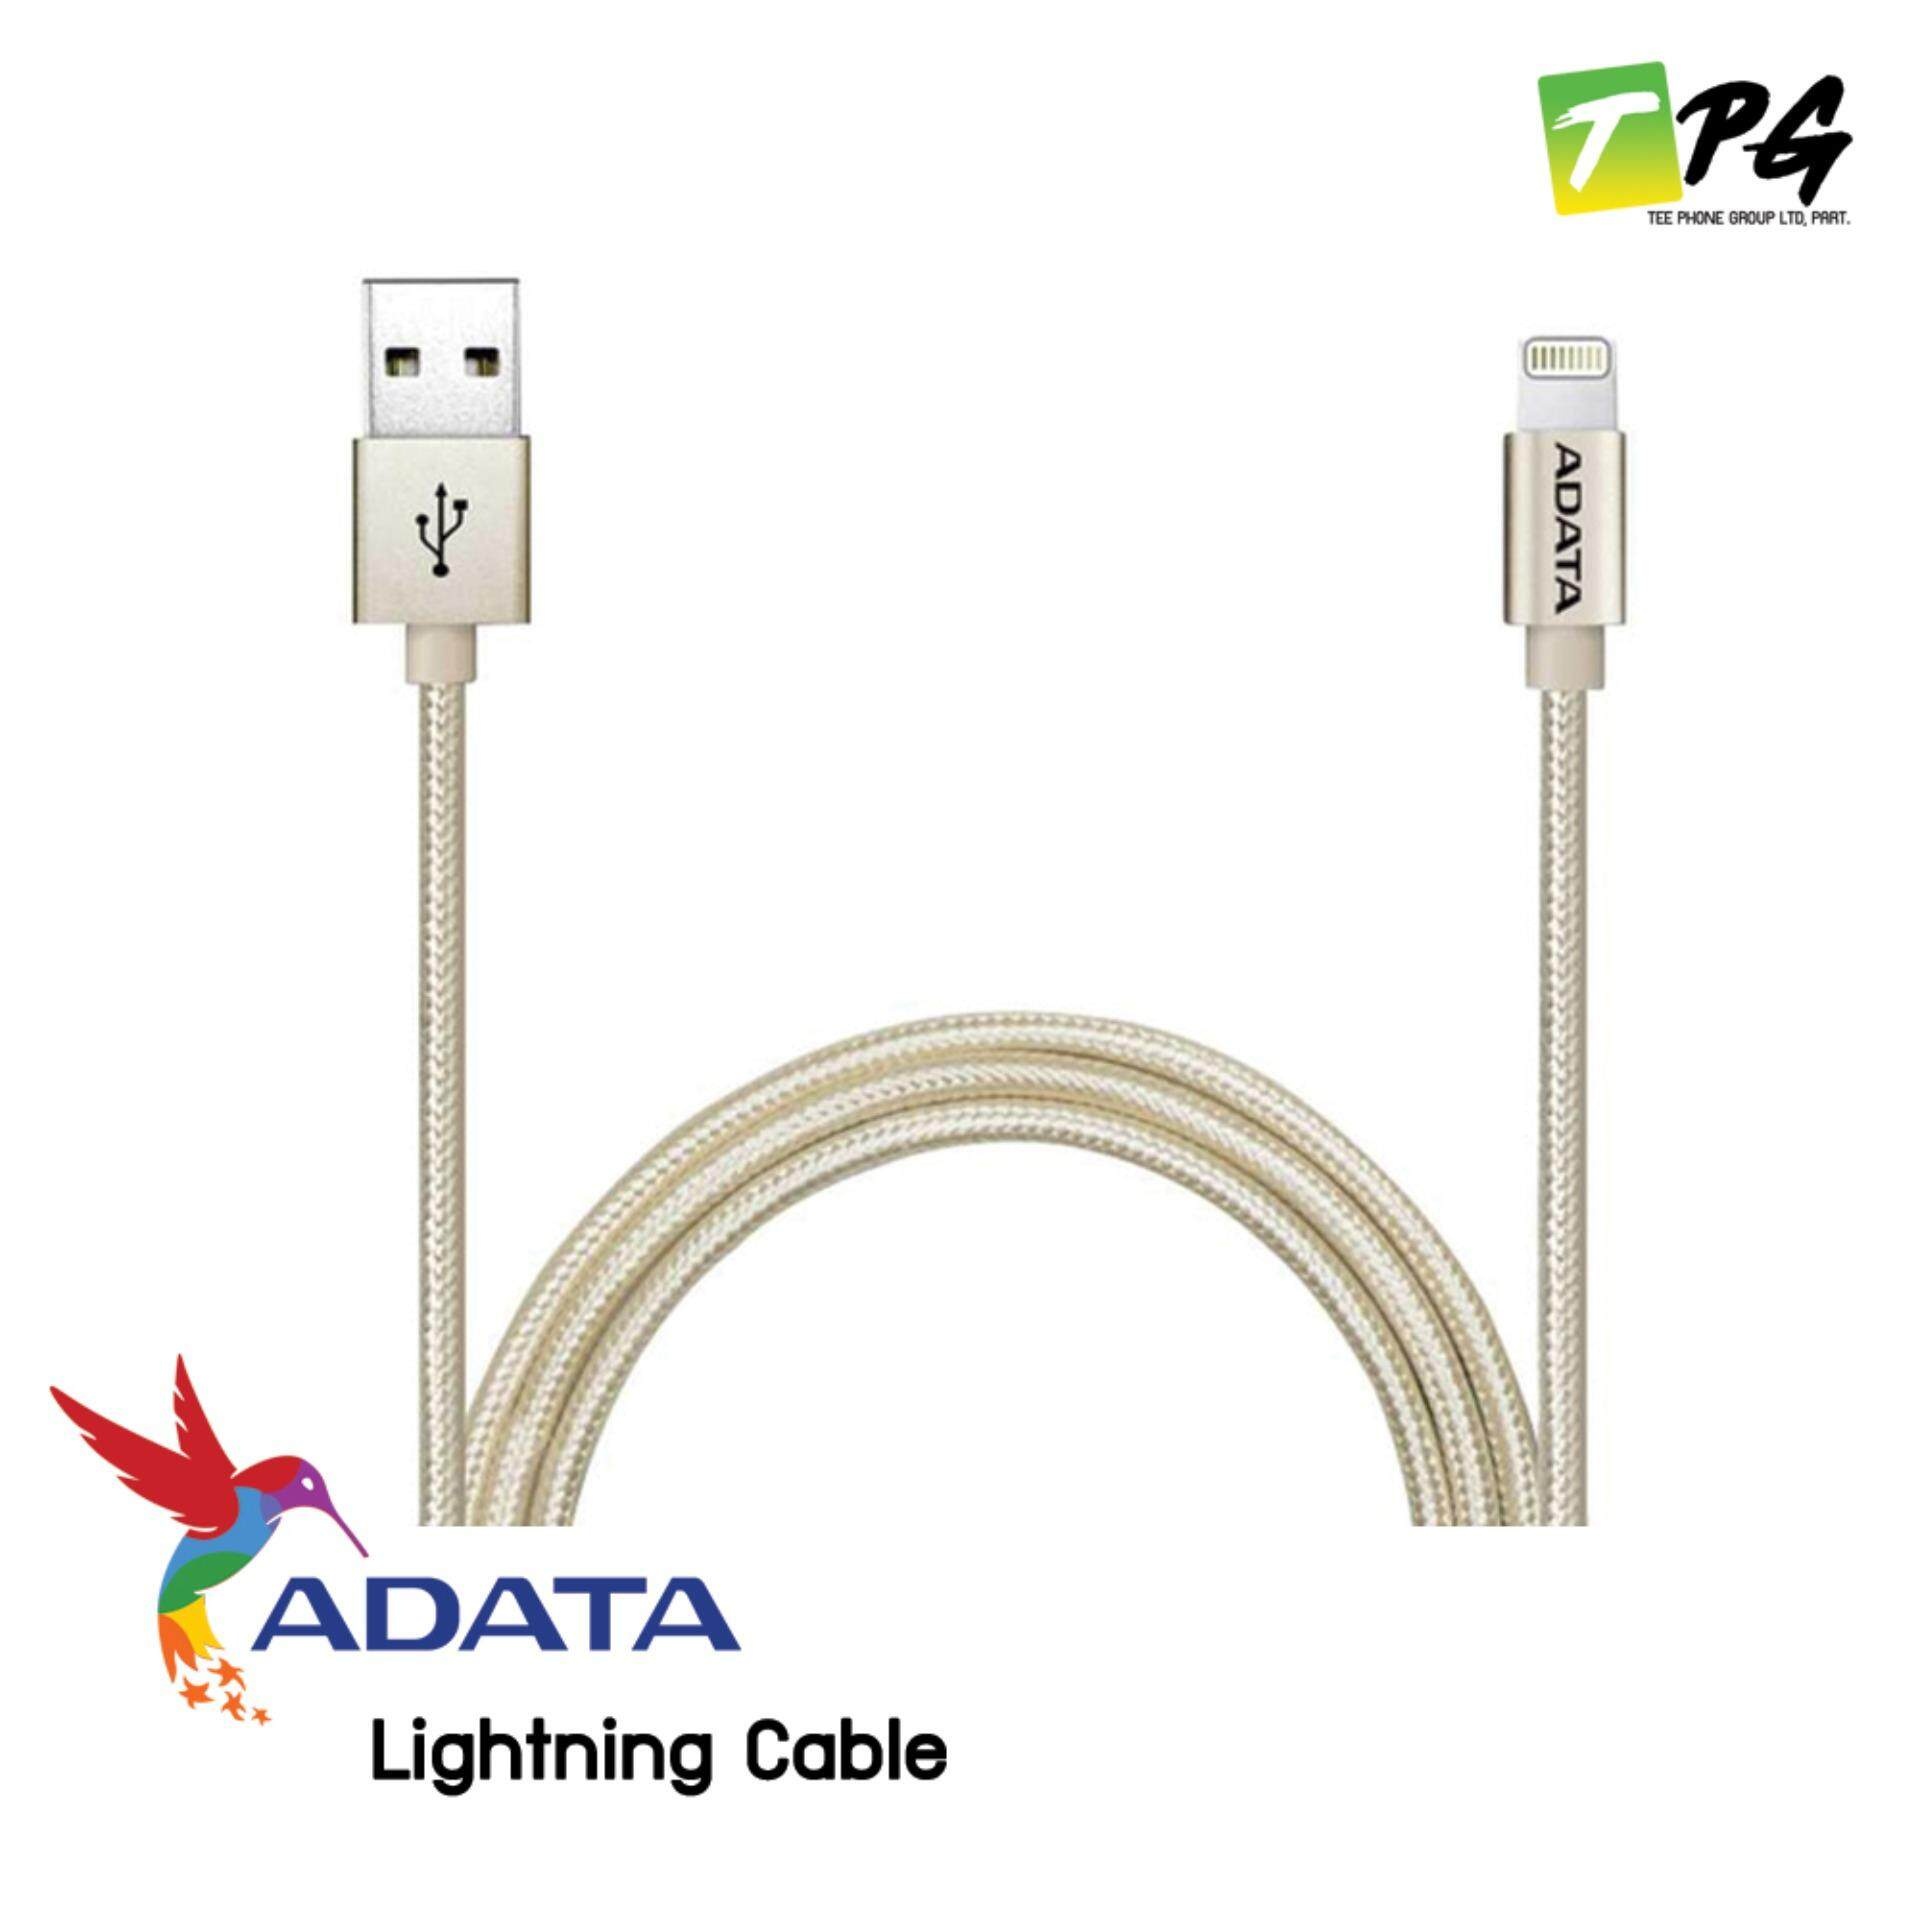 ADATA Lightning Cable **สายถัก**  100cm.